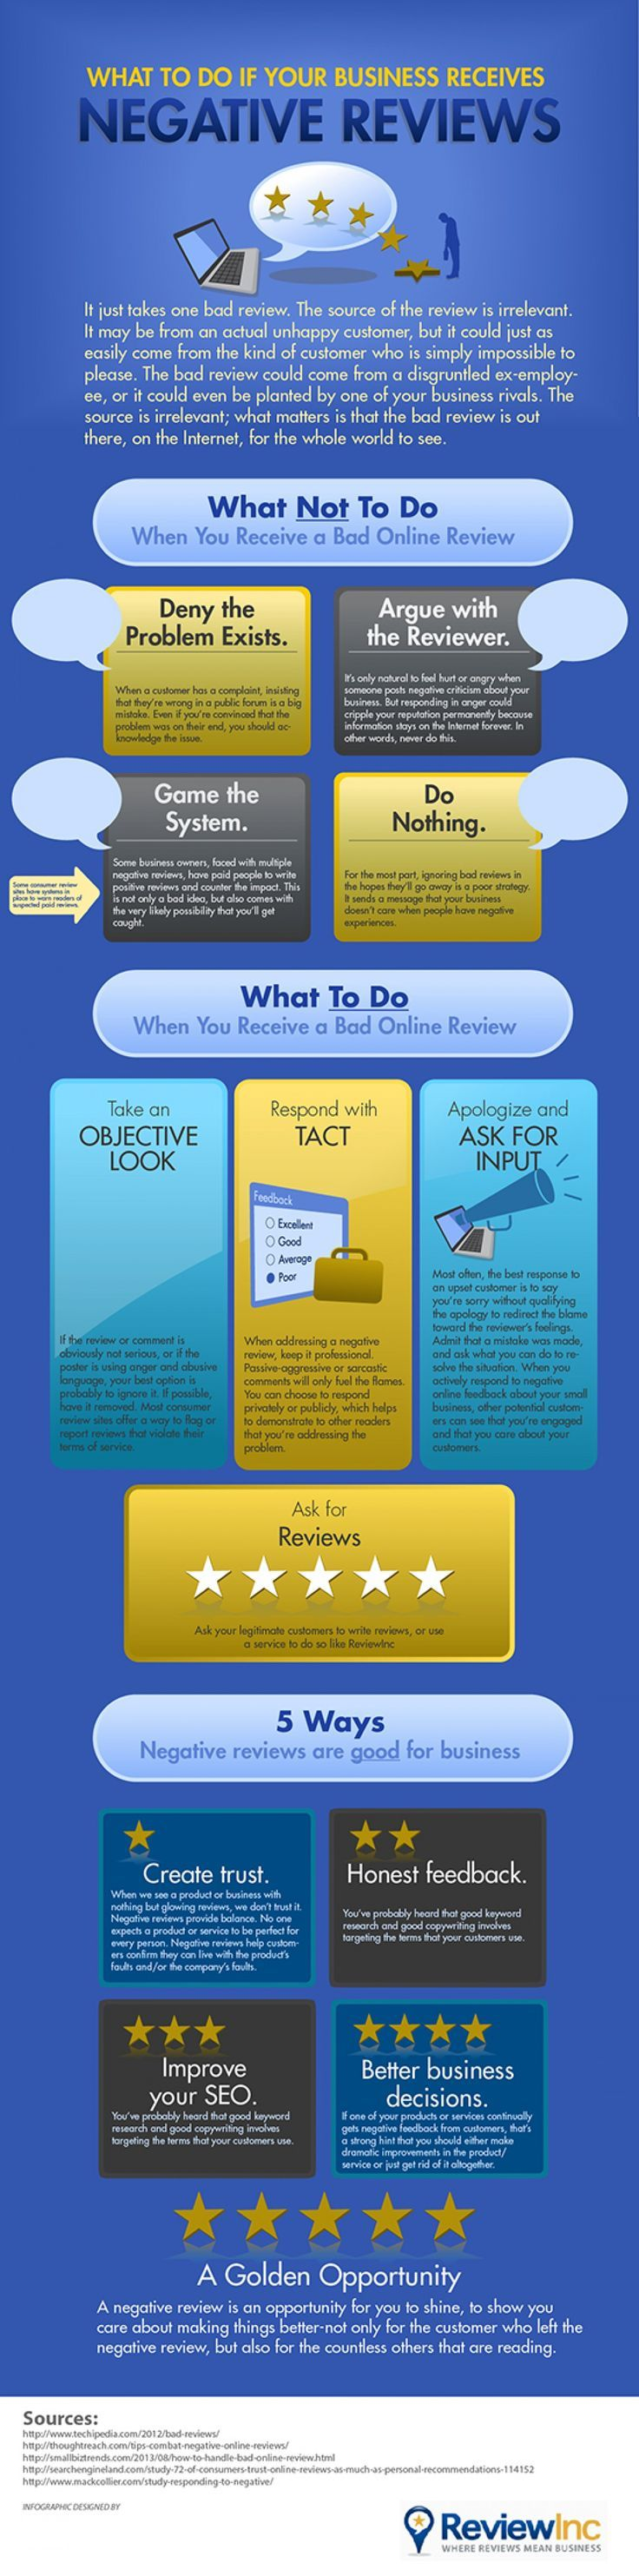 What to Do if Your Business Receives Negative Reviews #infographic